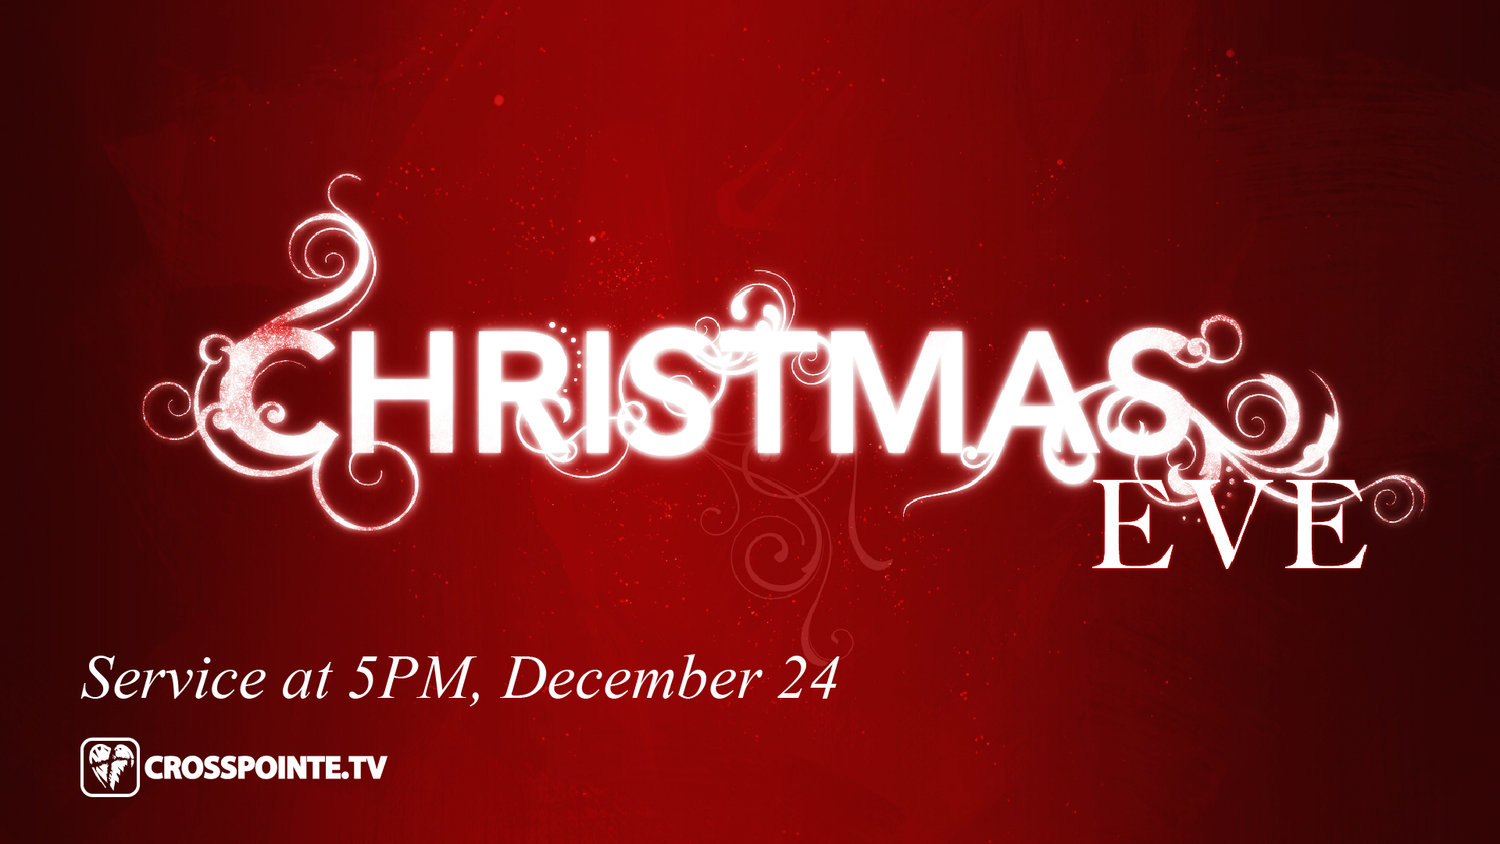 Christmas Eve Services.Christmas Eve Service Crosspointe Church